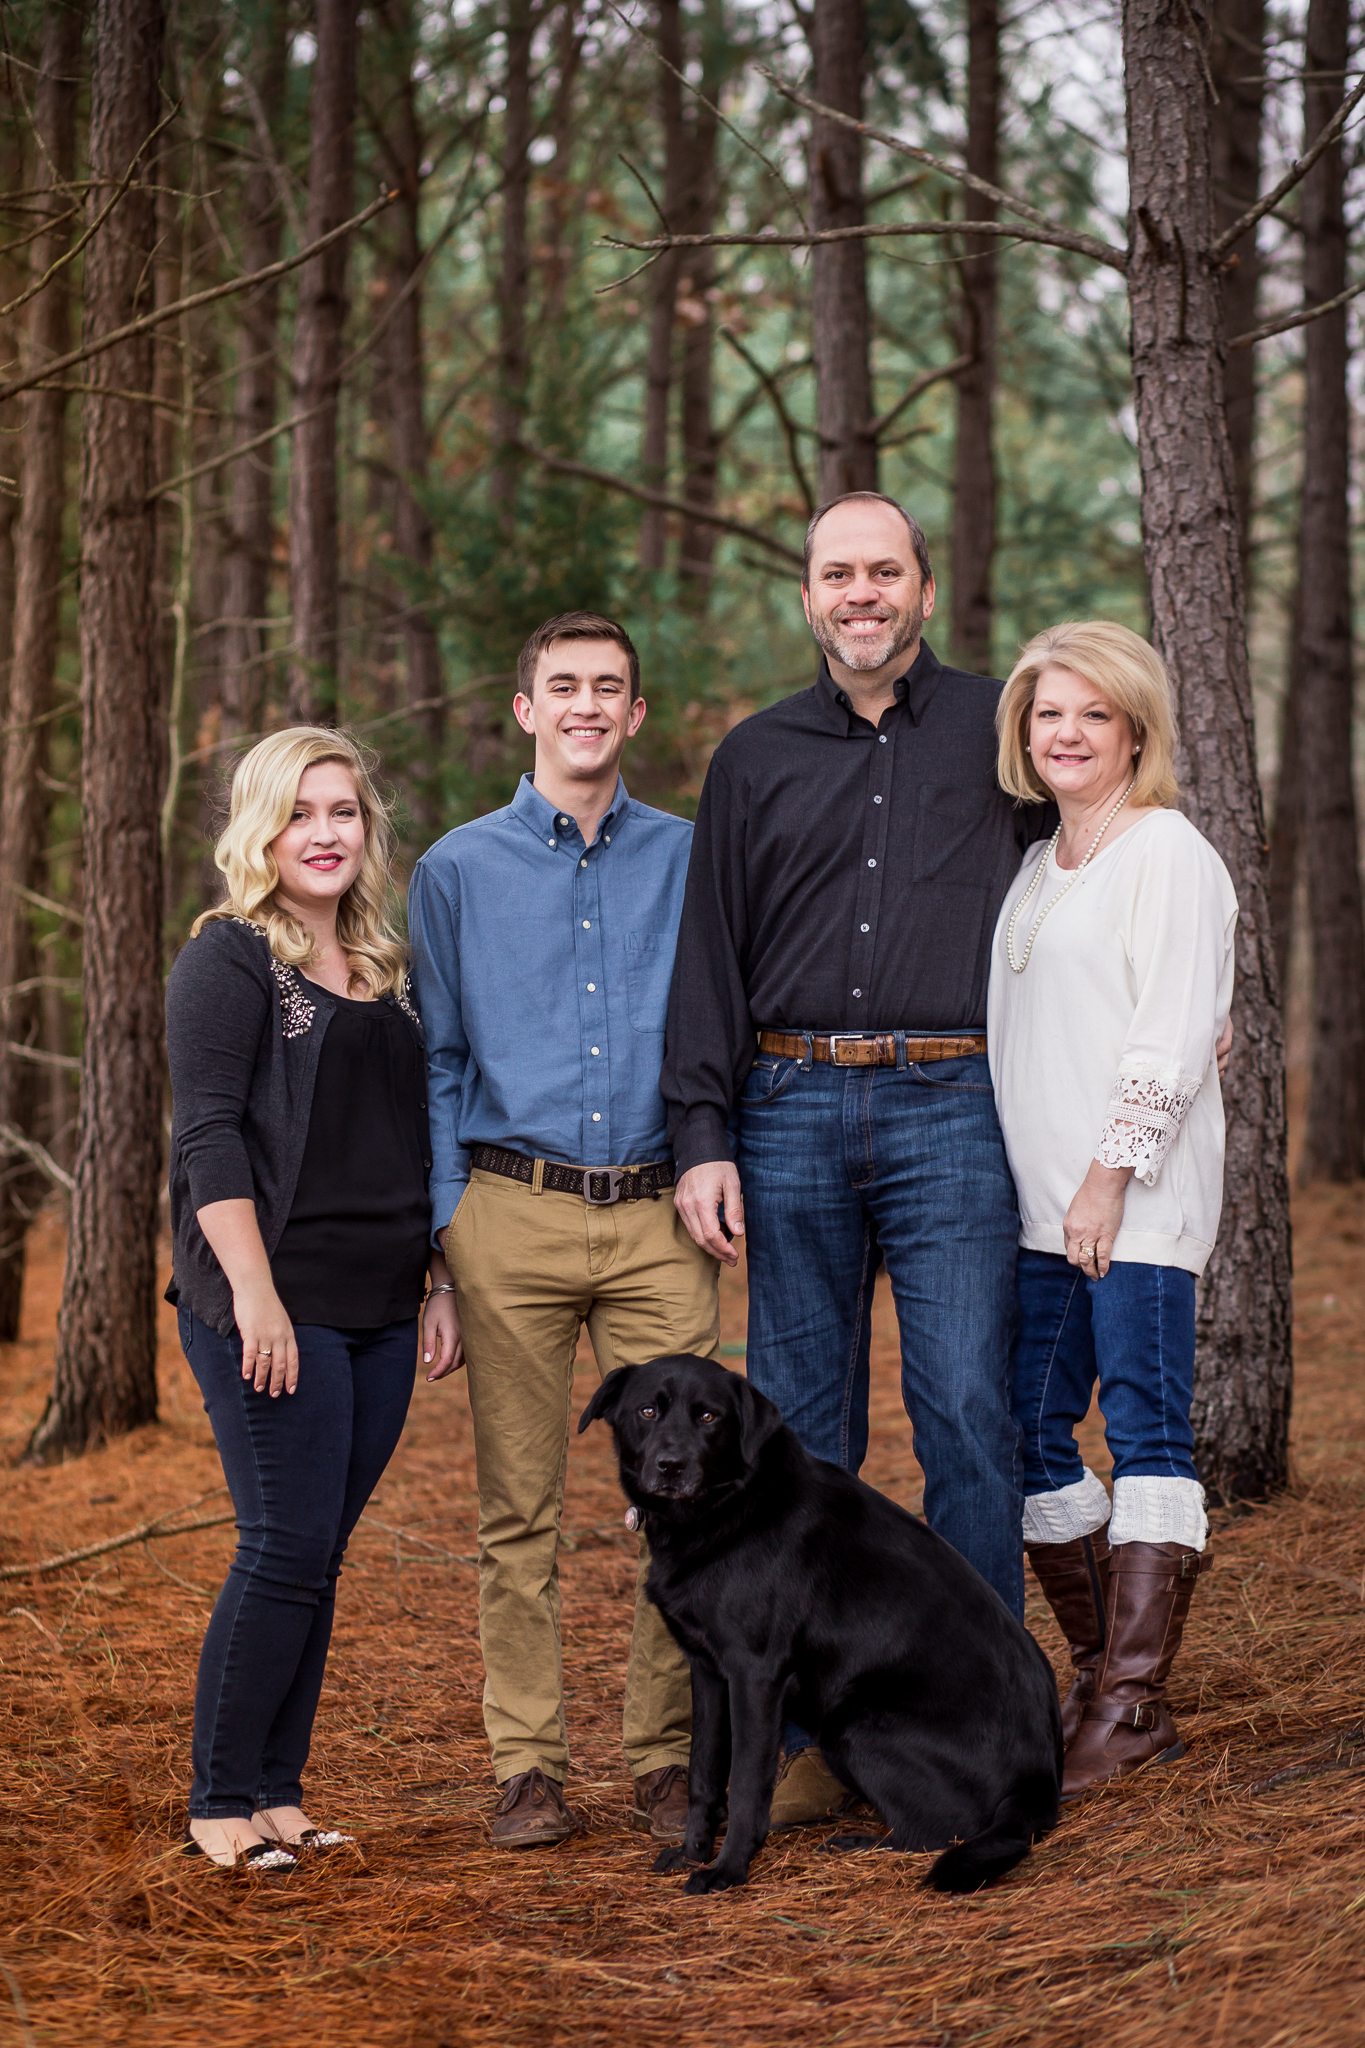 Chesterfield Virginia Family Portrait Photographer